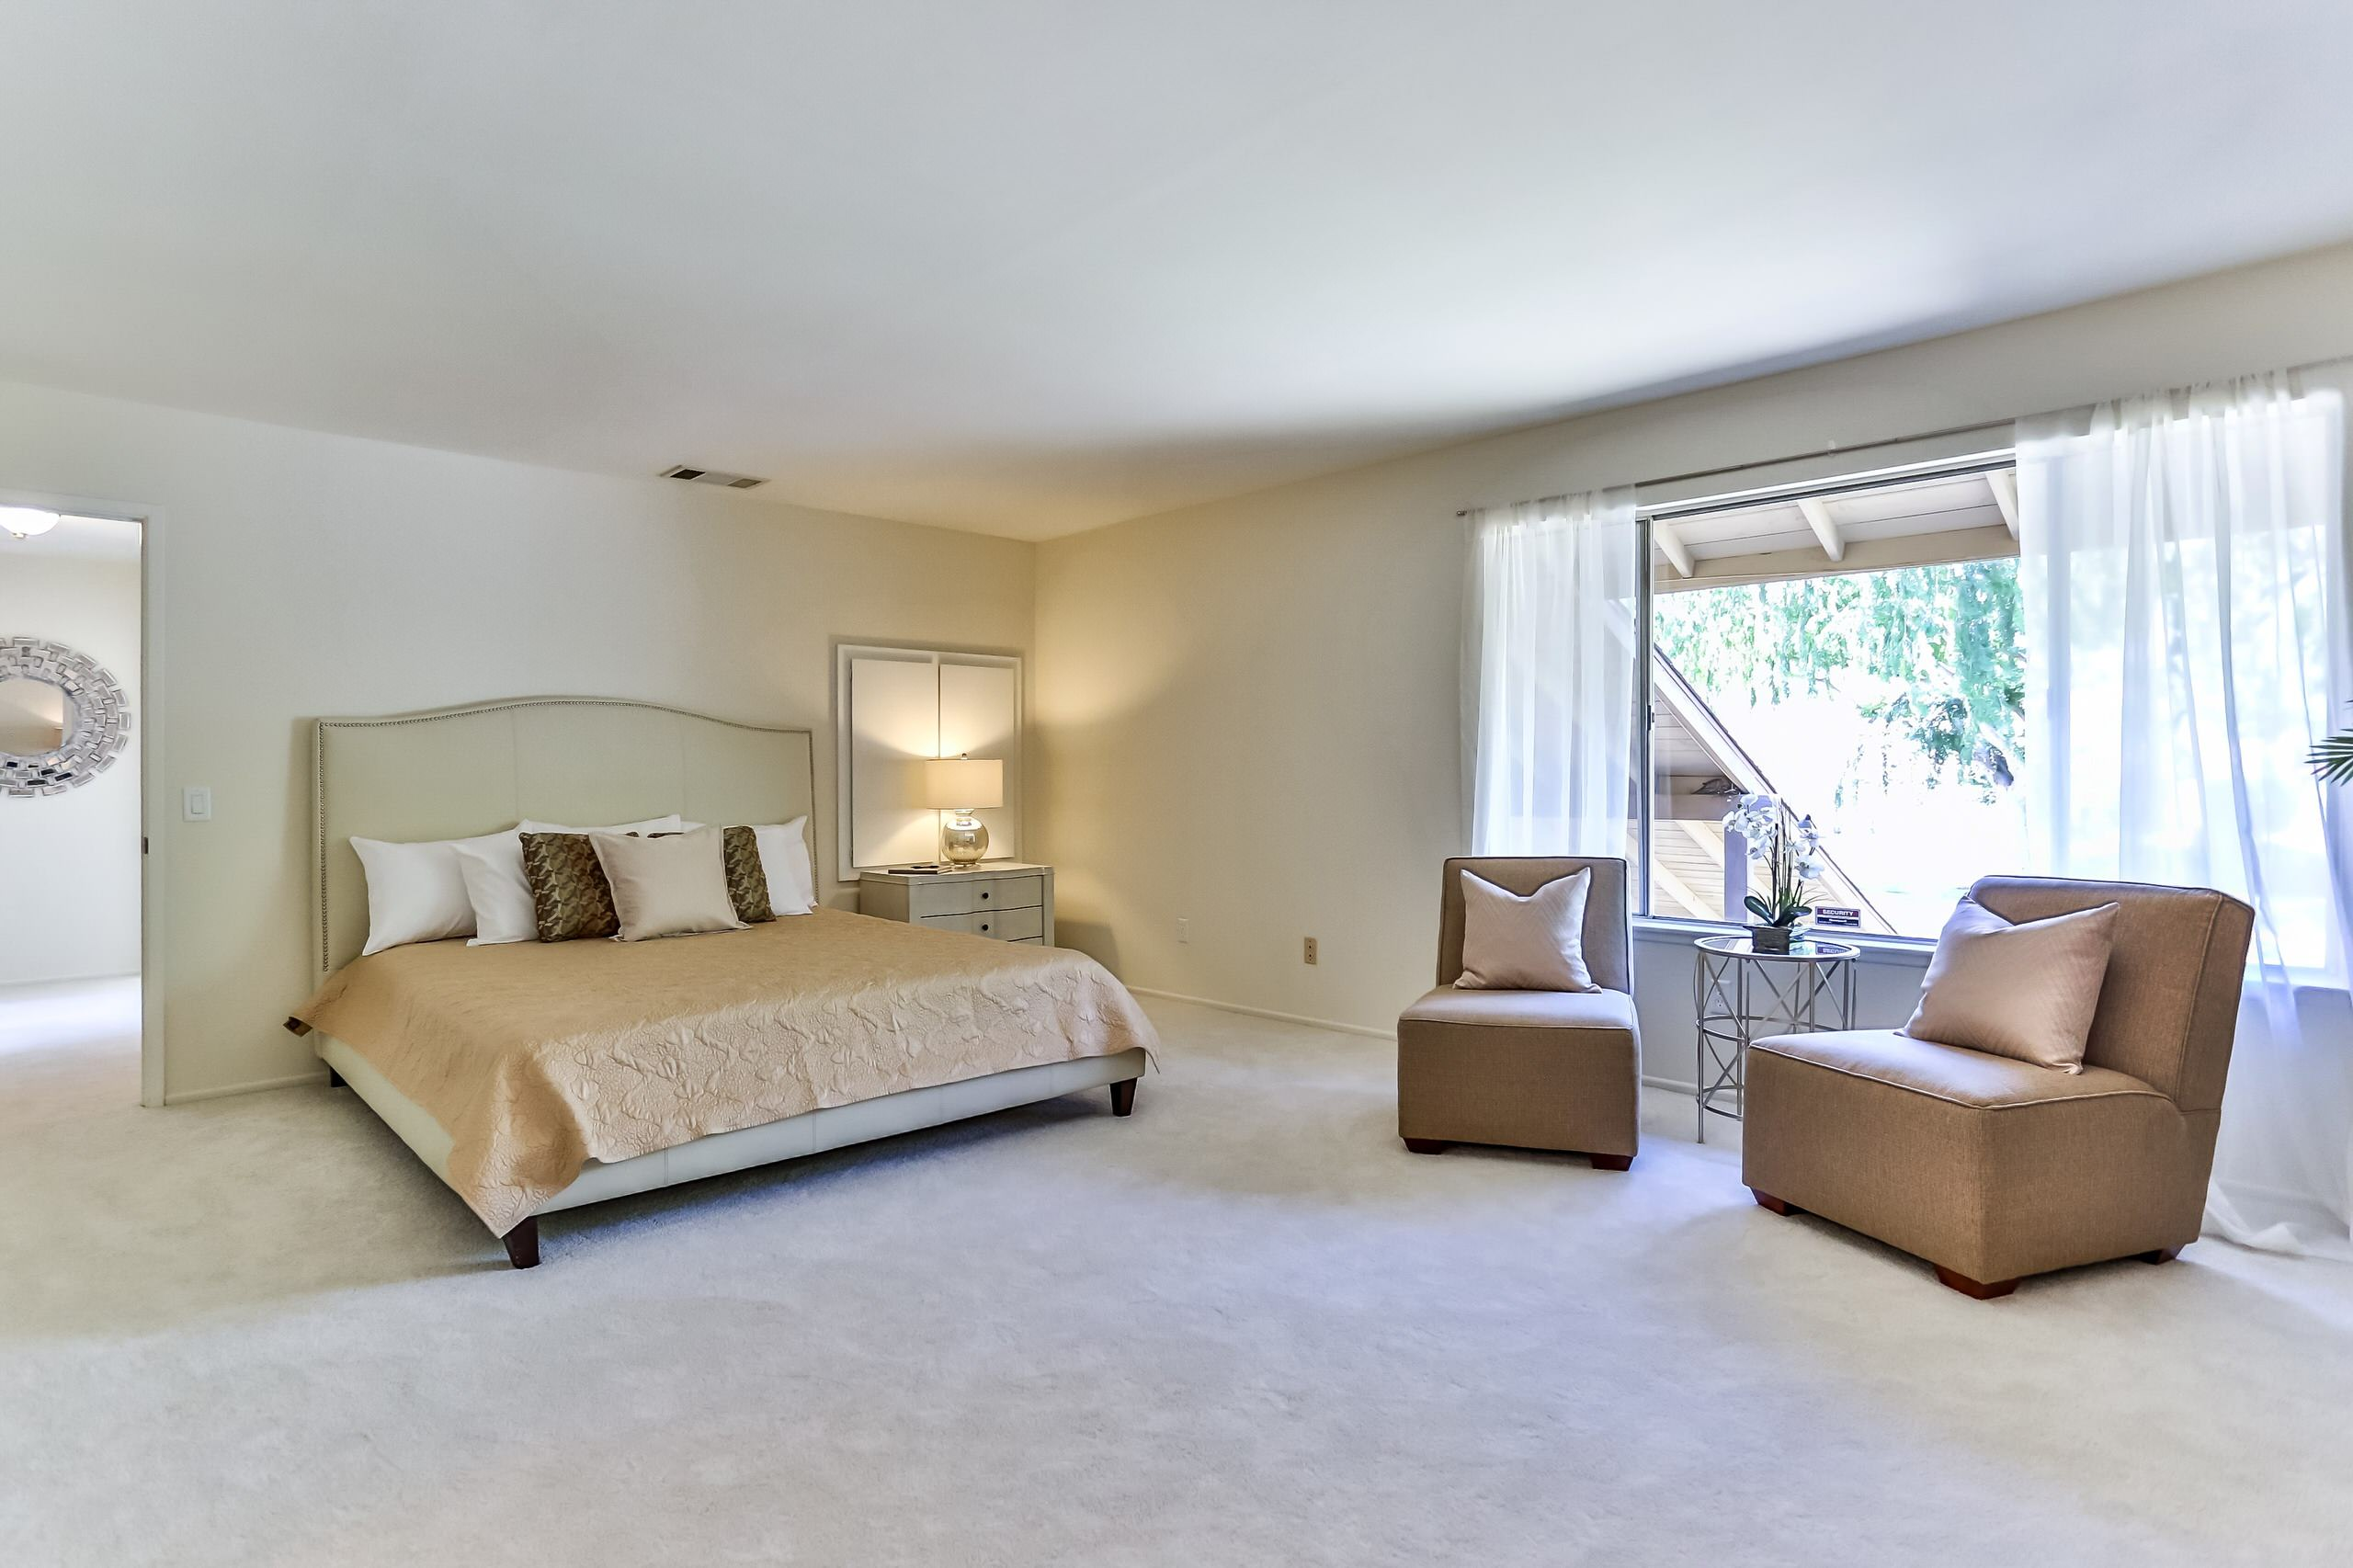 Home Staging Upland